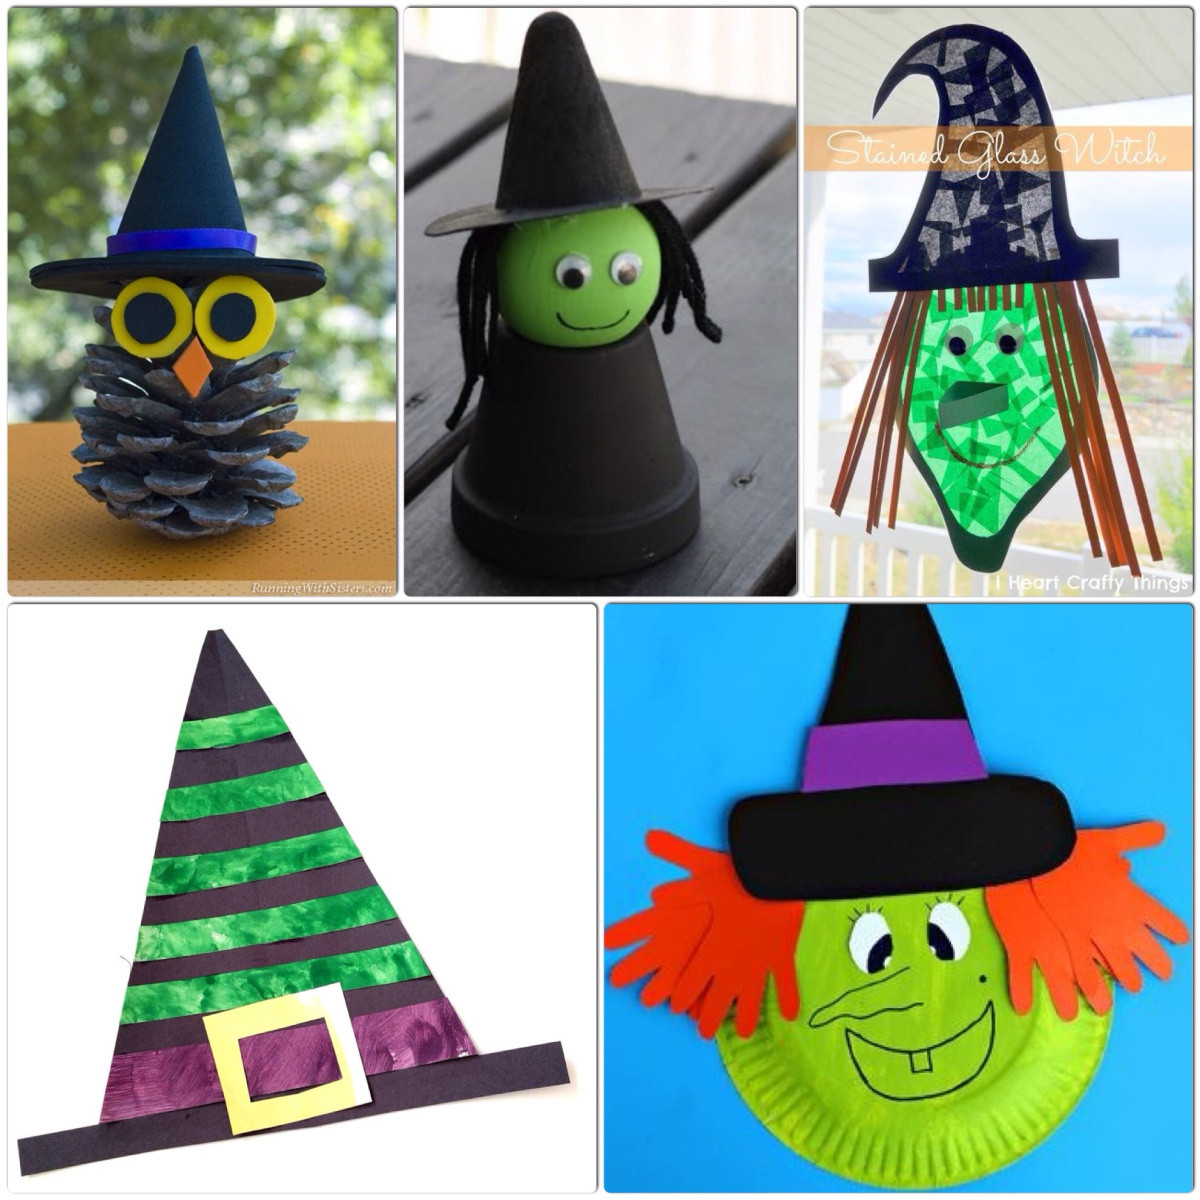 Best ideas about Fun Crafts For Kids . Save or Pin Witch Crafts for Kids – More Halloween Fun Now.